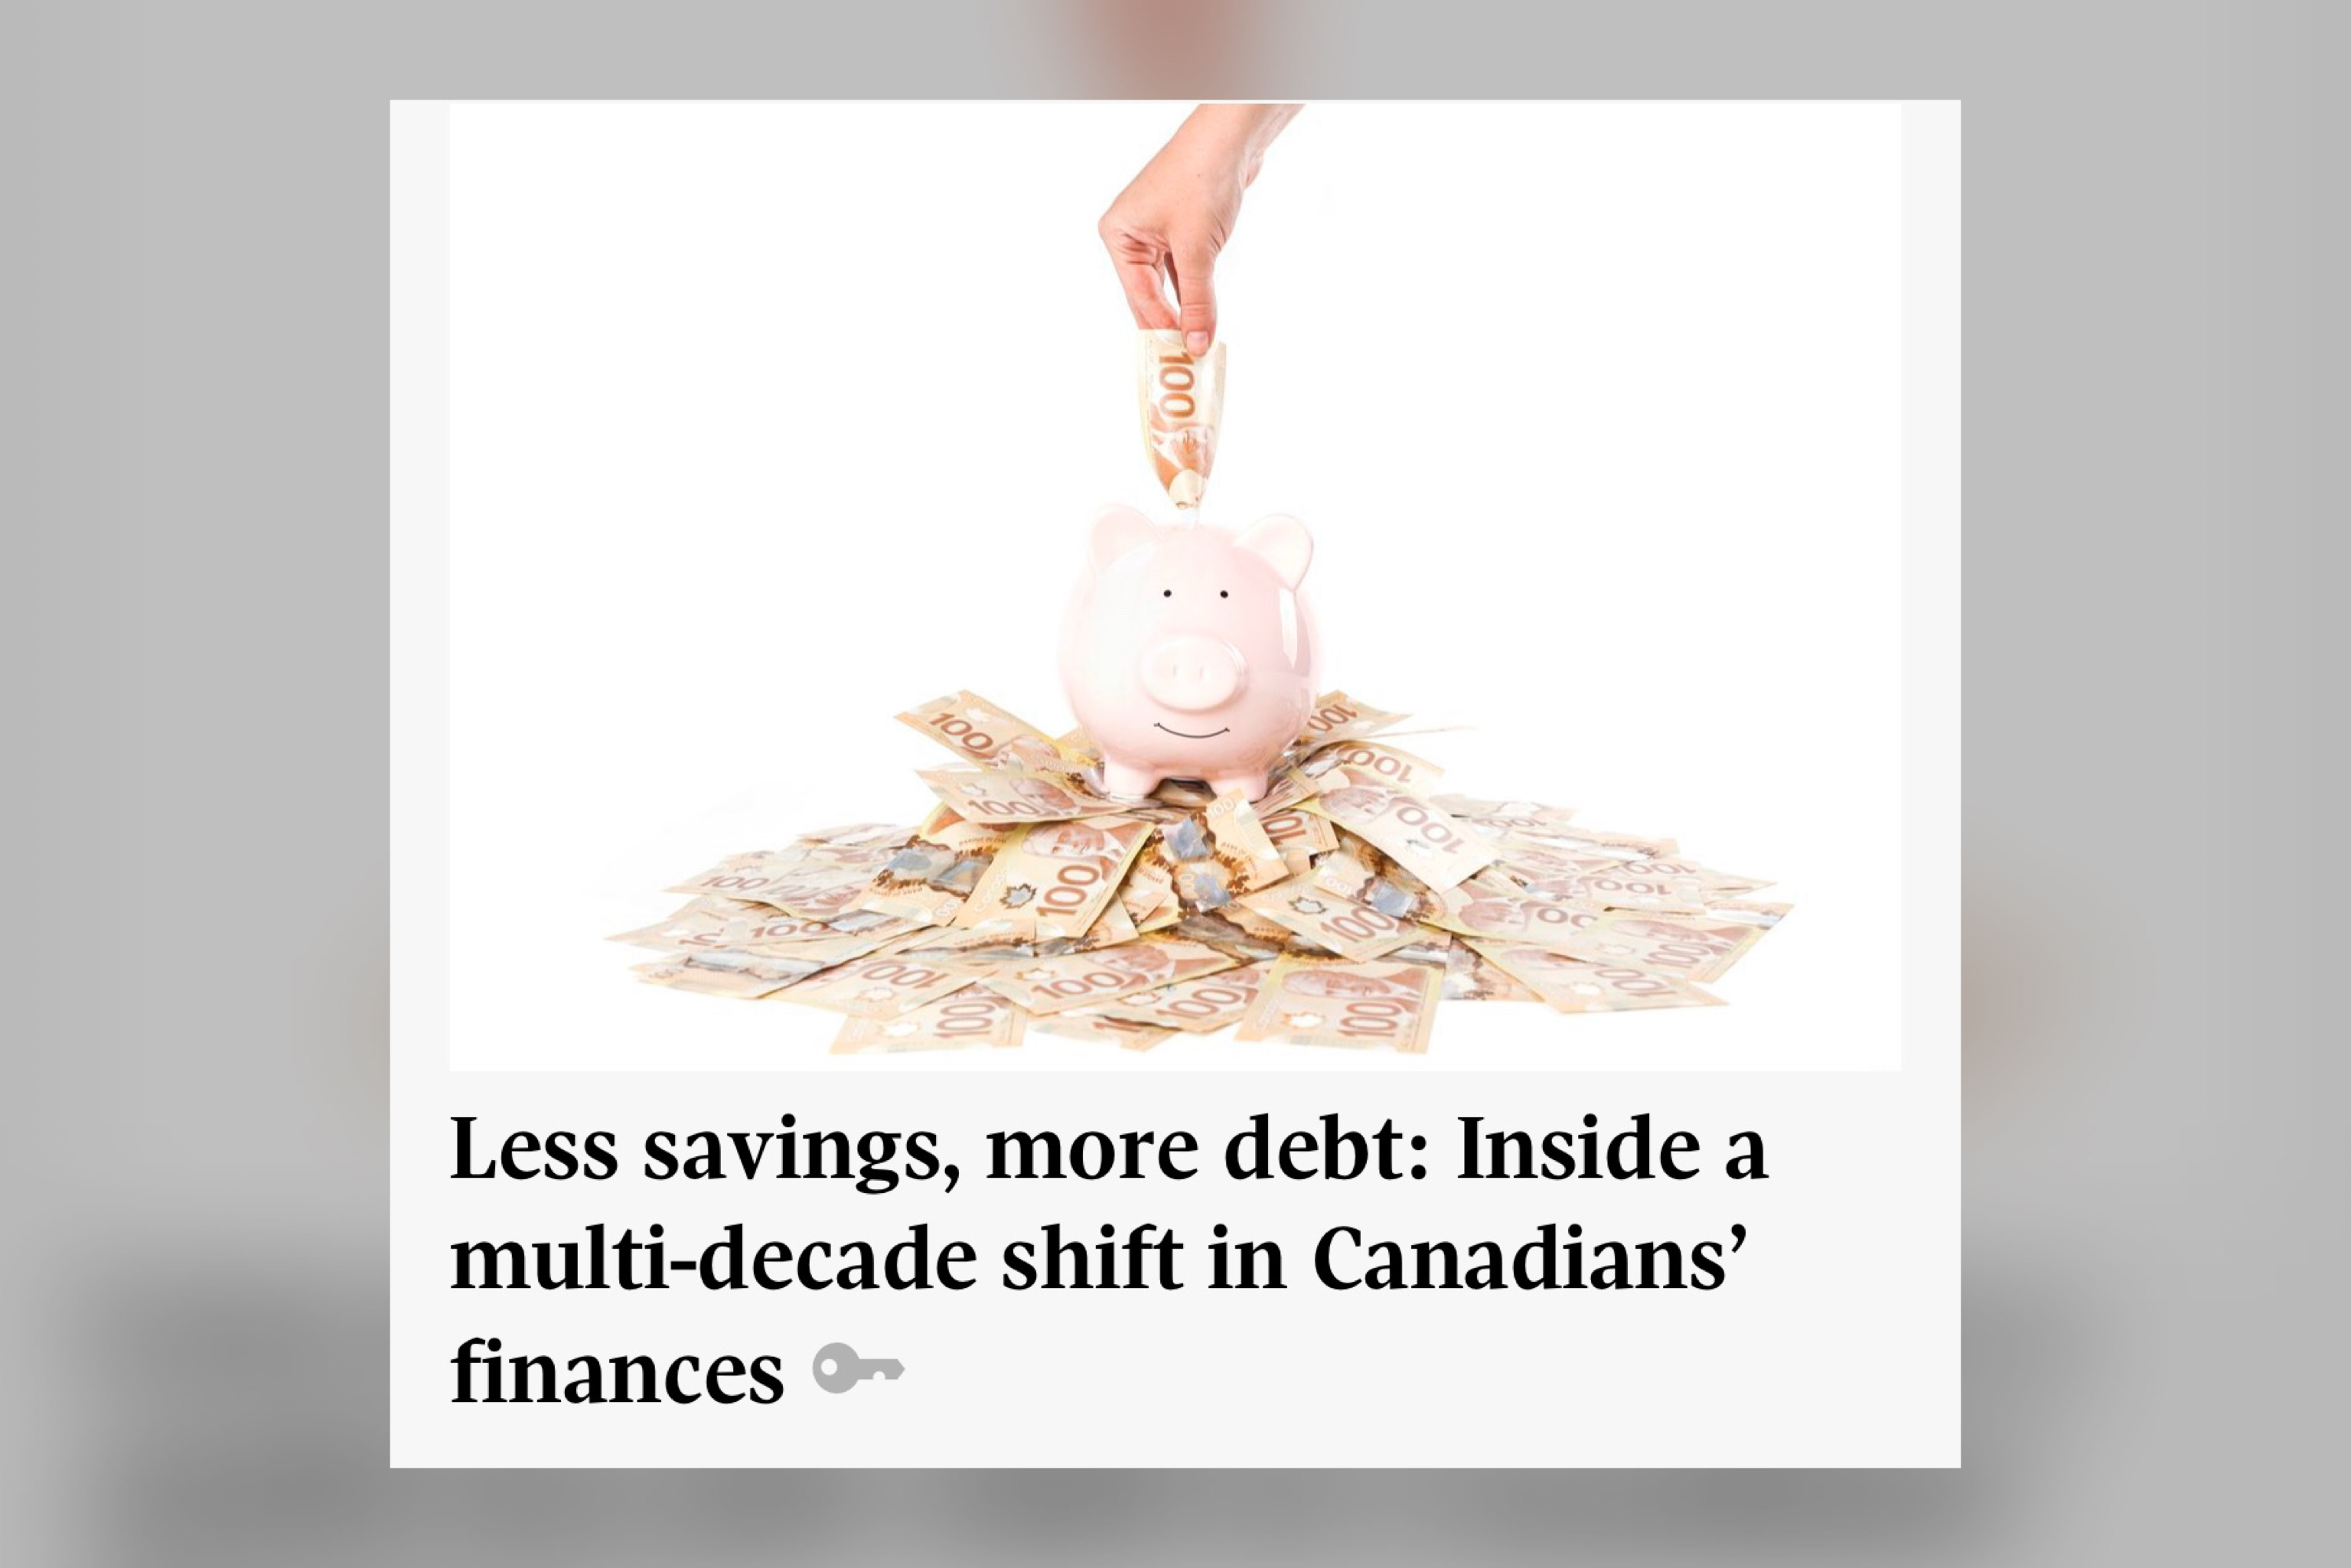 Less savings, more debt: Inside a multi-decade shift in Canadians' finances